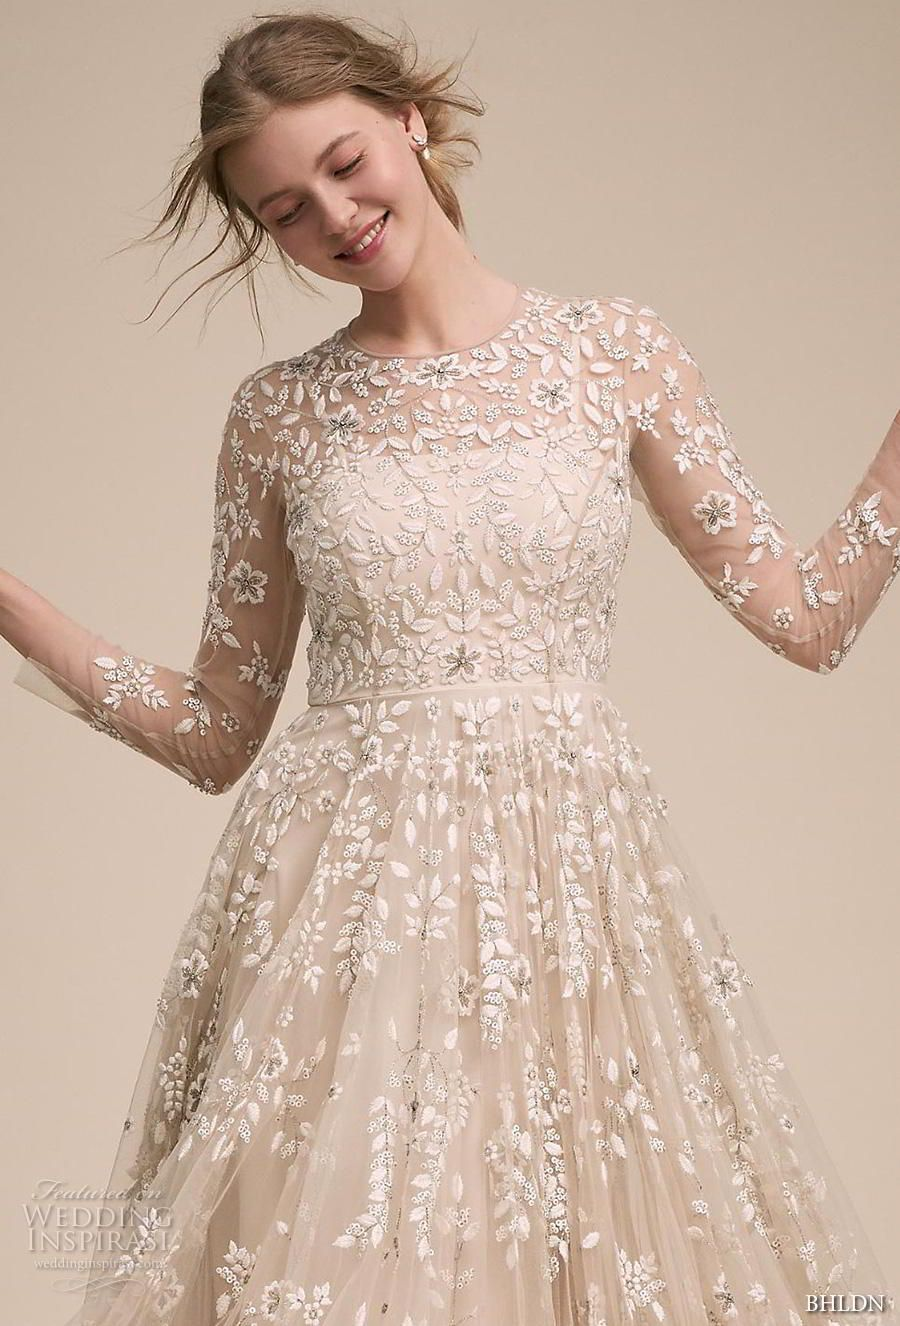 Effortless style with bhldnus own wedding dress collection wedding